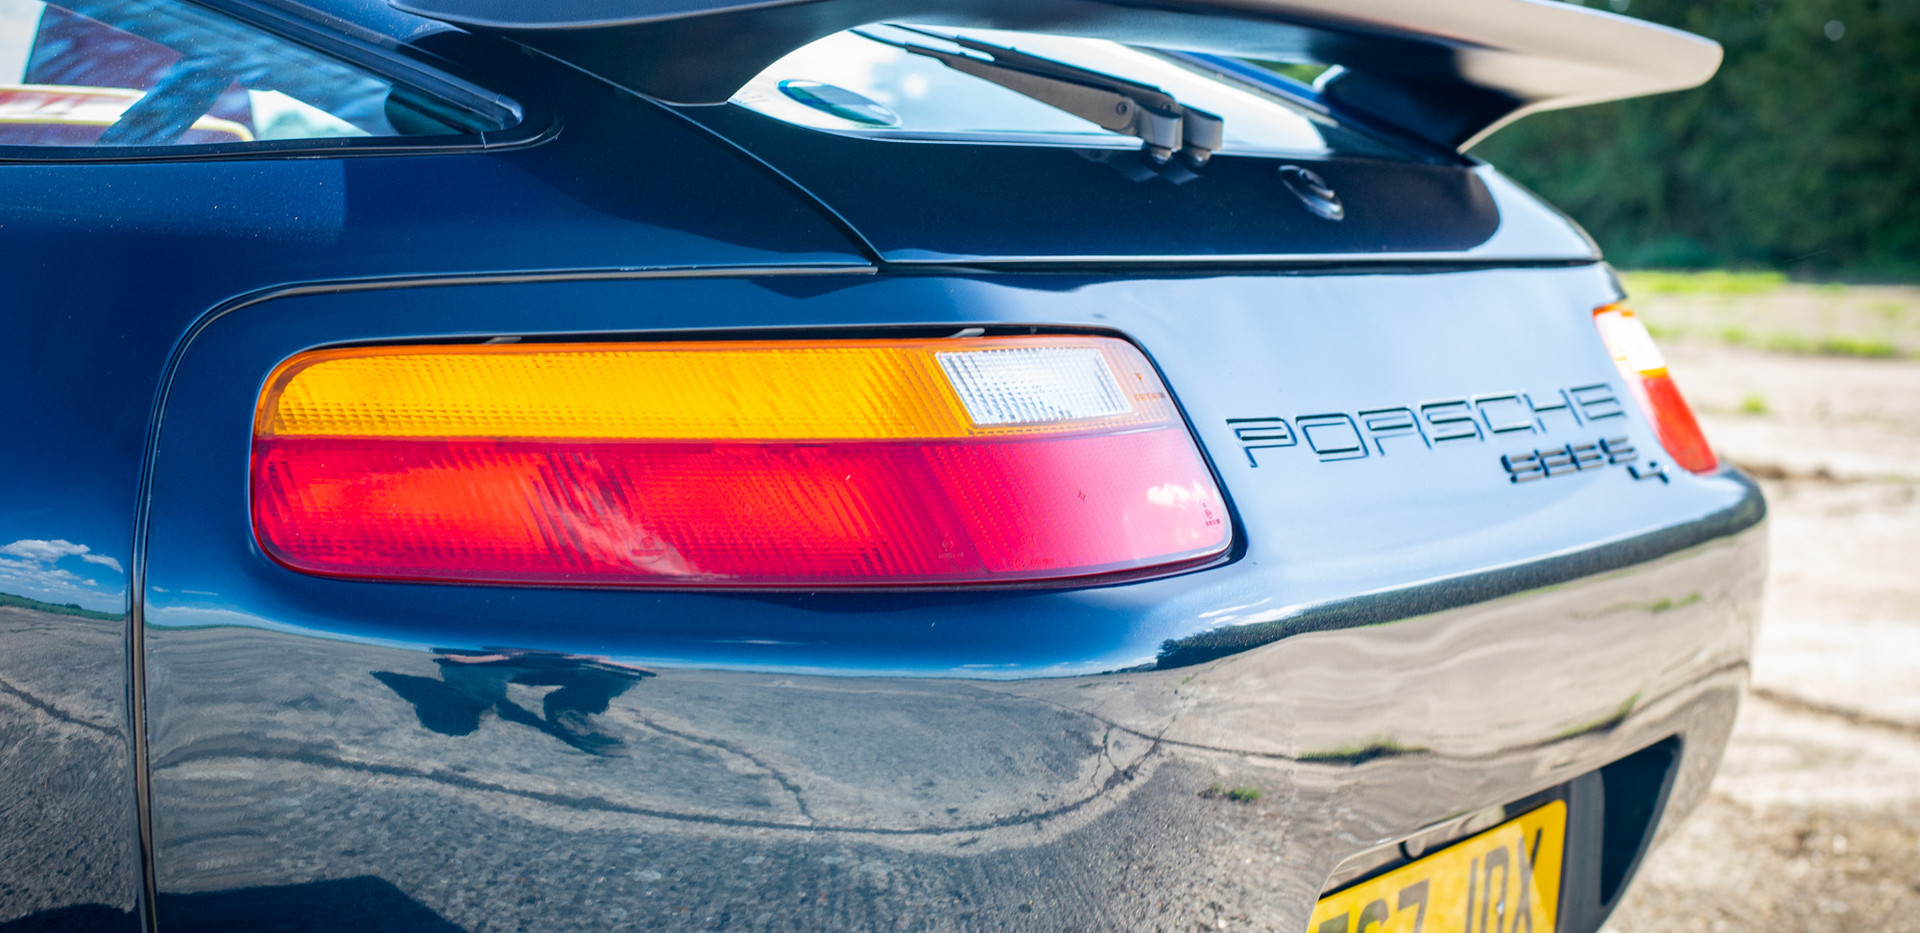 Porsche_928_ForSale Uk London-16.jpg